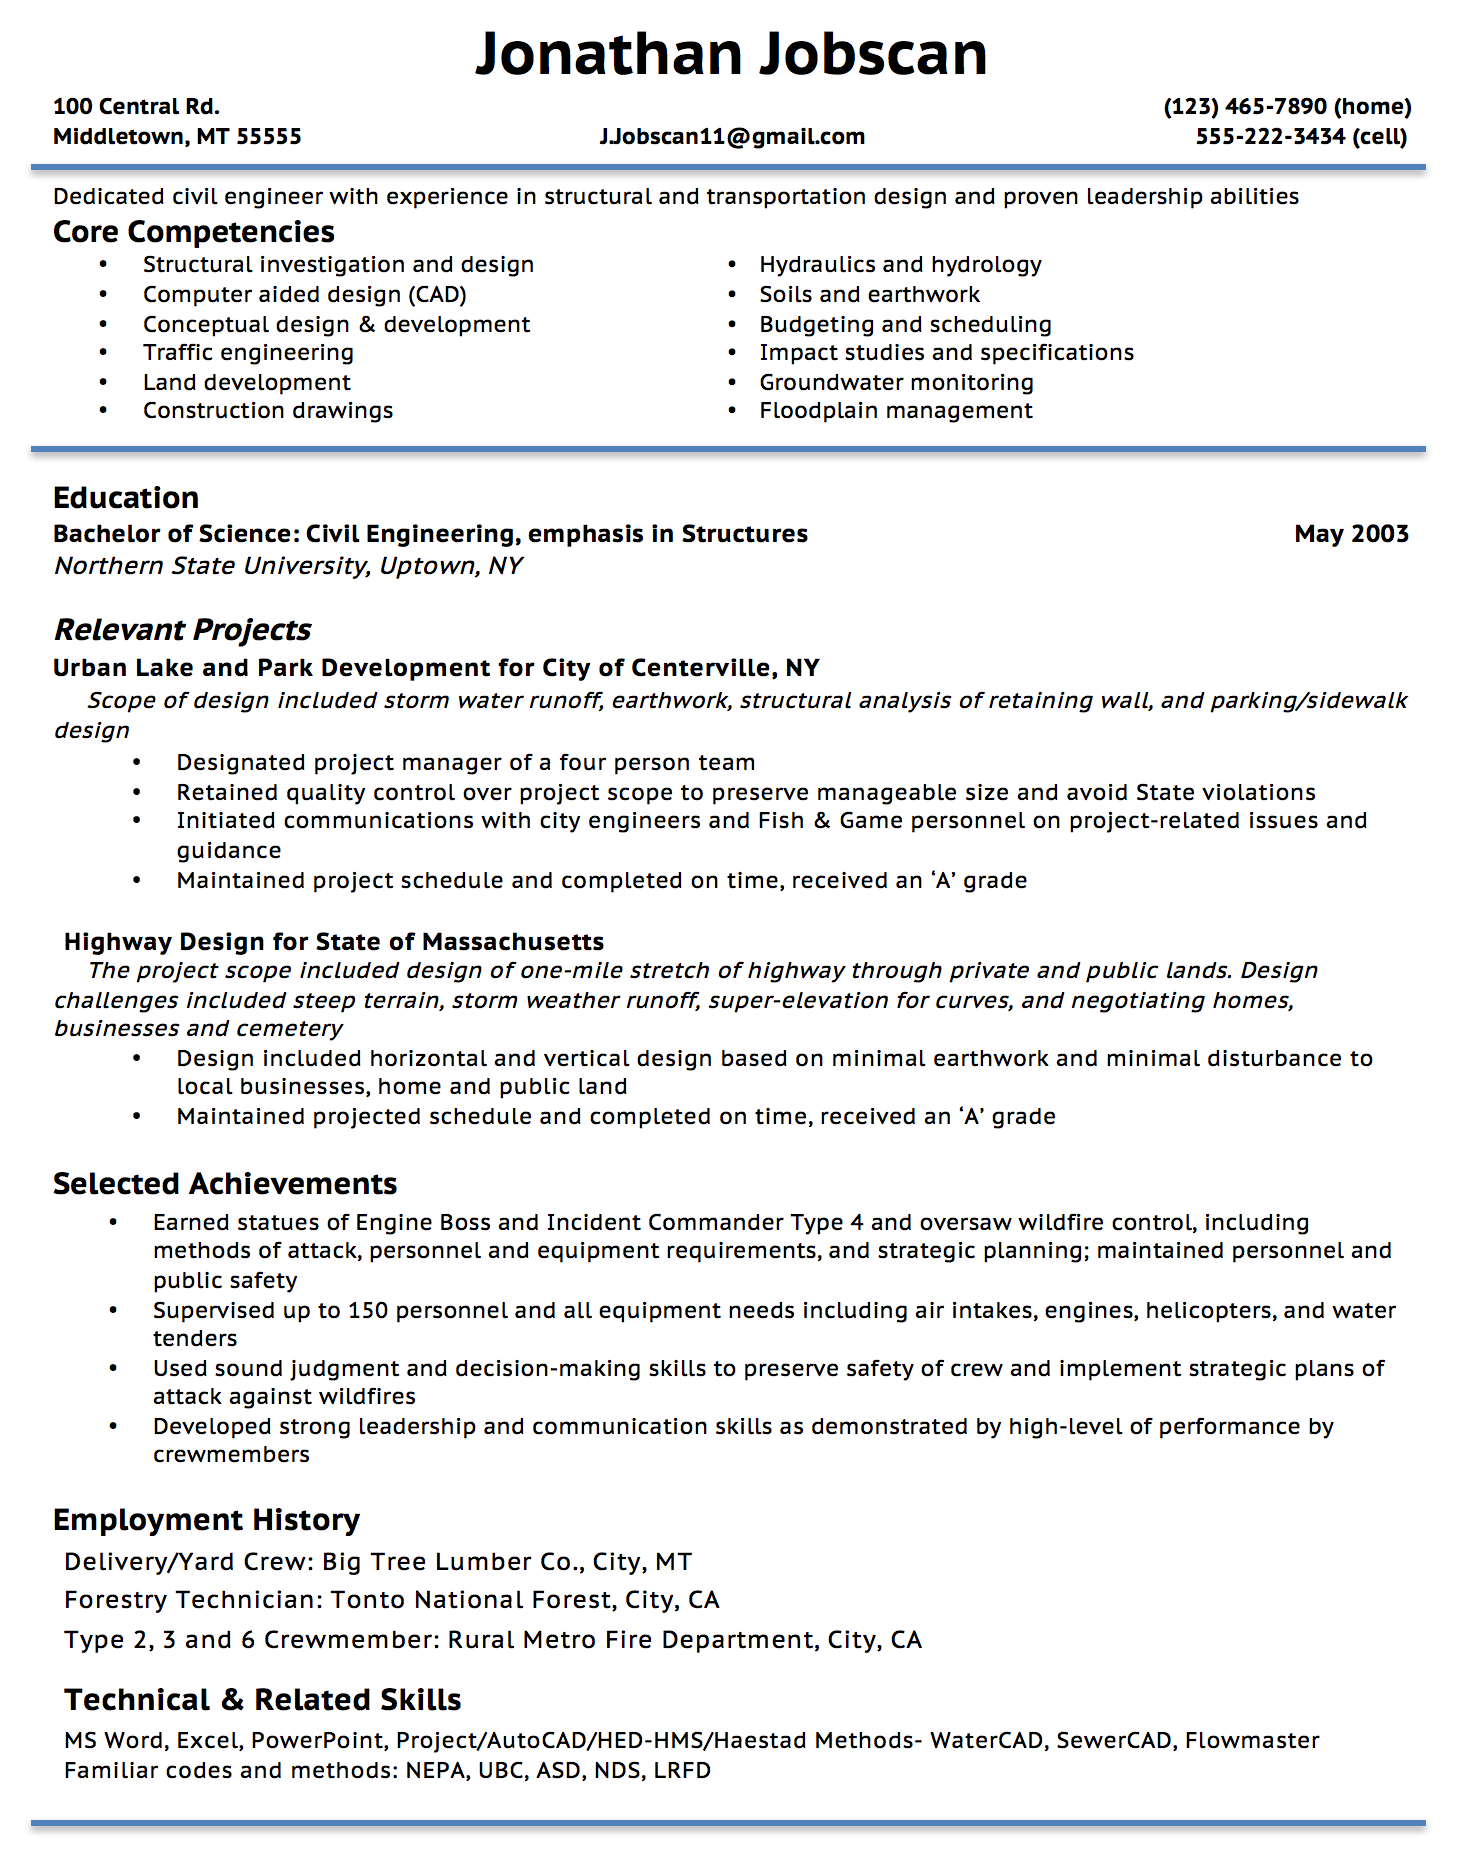 Opposenewapstandardsus  Winsome Resume Writing Guide  Jobscan With Exquisite Example Of A Functional Resume Format With Endearing Resume Starter Also Resume Qualification Examples In Addition Physical Education Teacher Resume And Food Industry Resume As Well As Engineering Intern Resume Additionally Program Assistant Resume From Jobscanco With Opposenewapstandardsus  Exquisite Resume Writing Guide  Jobscan With Endearing Example Of A Functional Resume Format And Winsome Resume Starter Also Resume Qualification Examples In Addition Physical Education Teacher Resume From Jobscanco